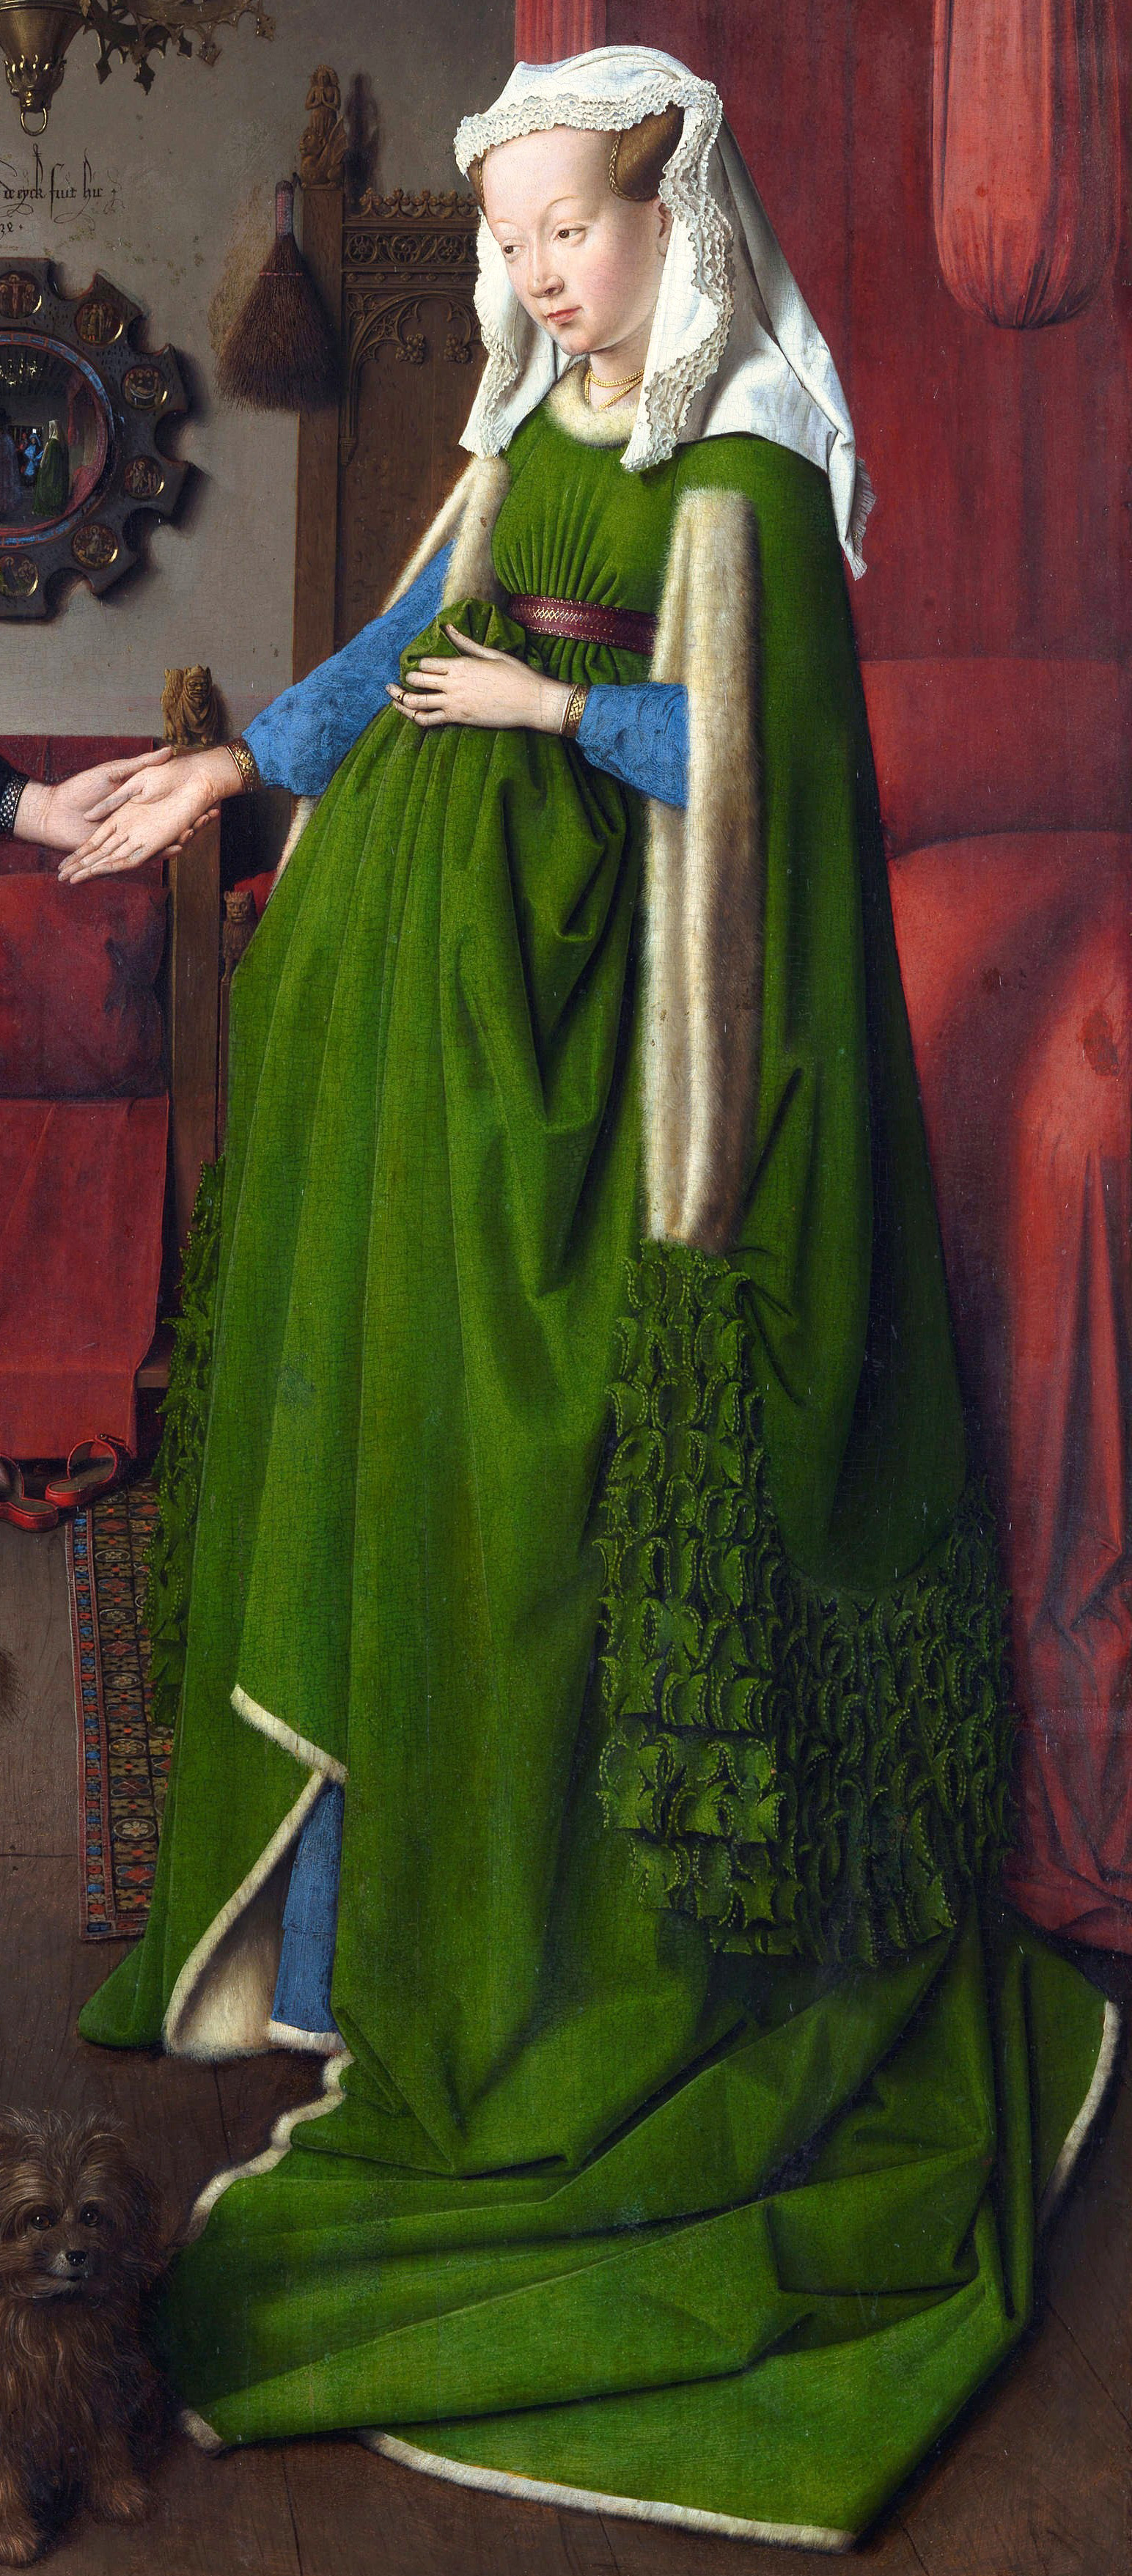 https://upload.wikimedia.org/wikipedia/commons/9/9b/Jan_van_Eyck_-_Portrait_of_Giovanni_Arnolfini_and_his_Wife_%28detail%29_-_WGA7692.jpg